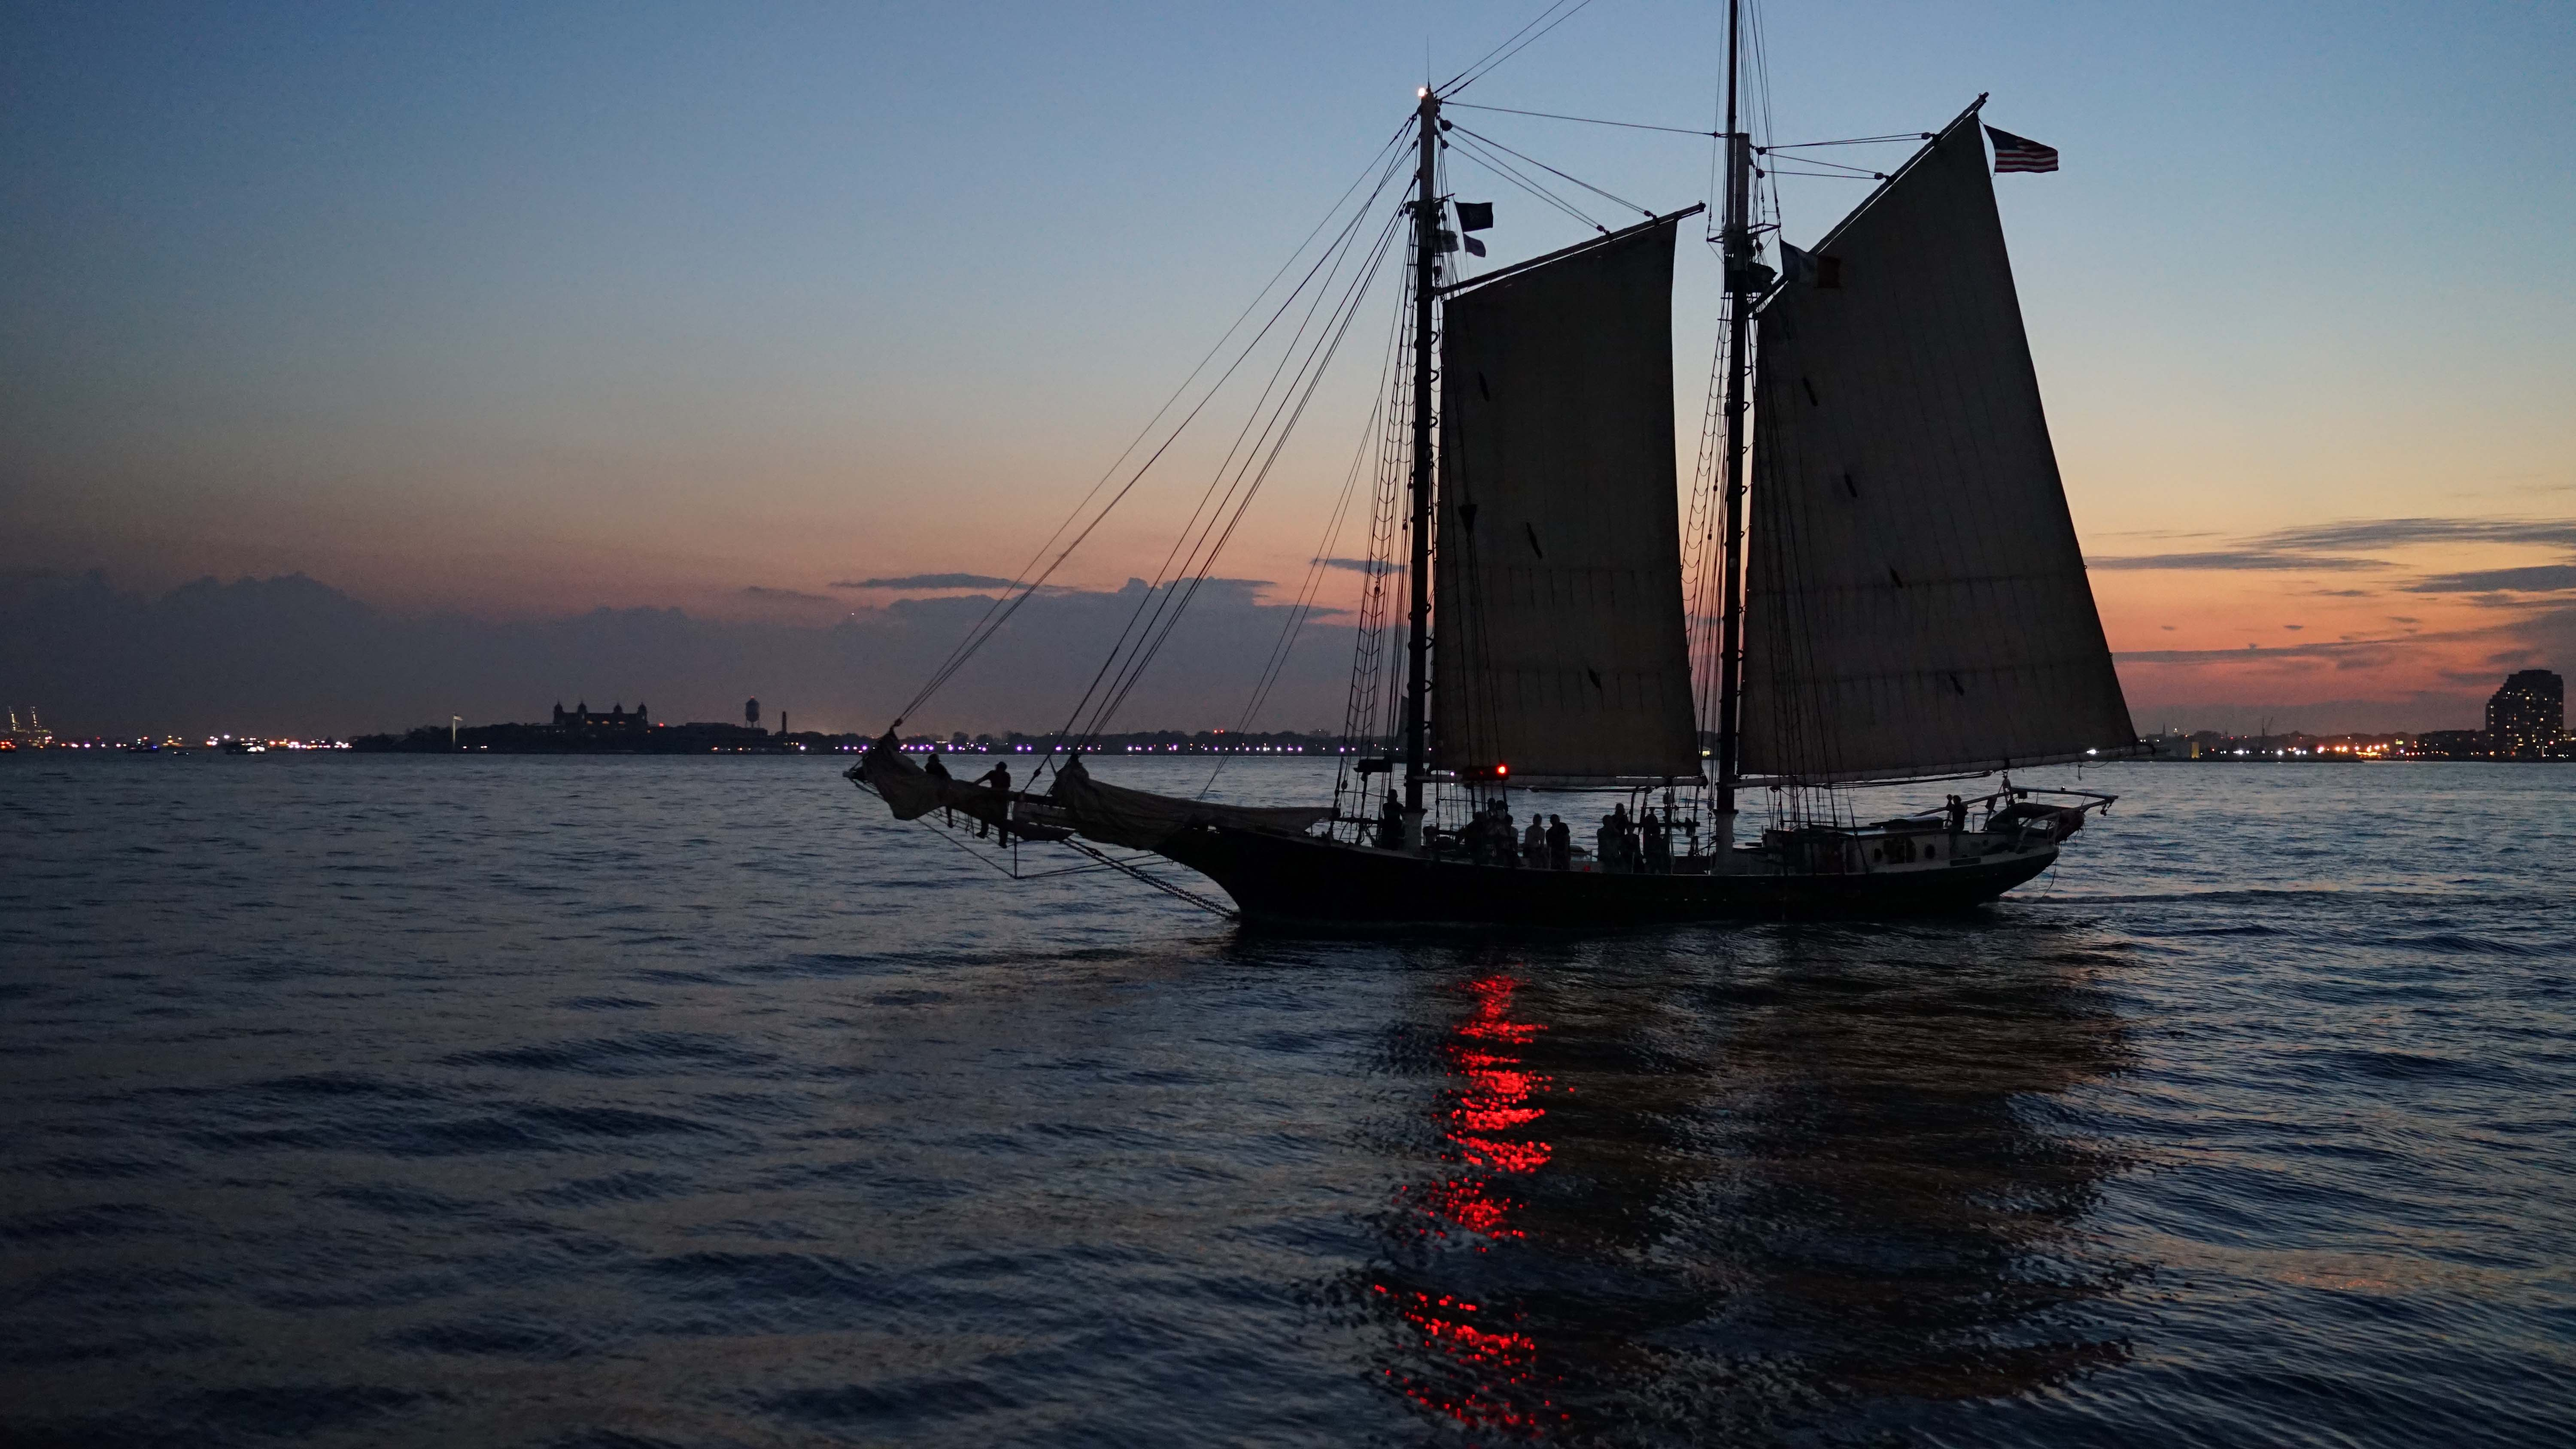 sunset clipper ship 8-16-2015 low